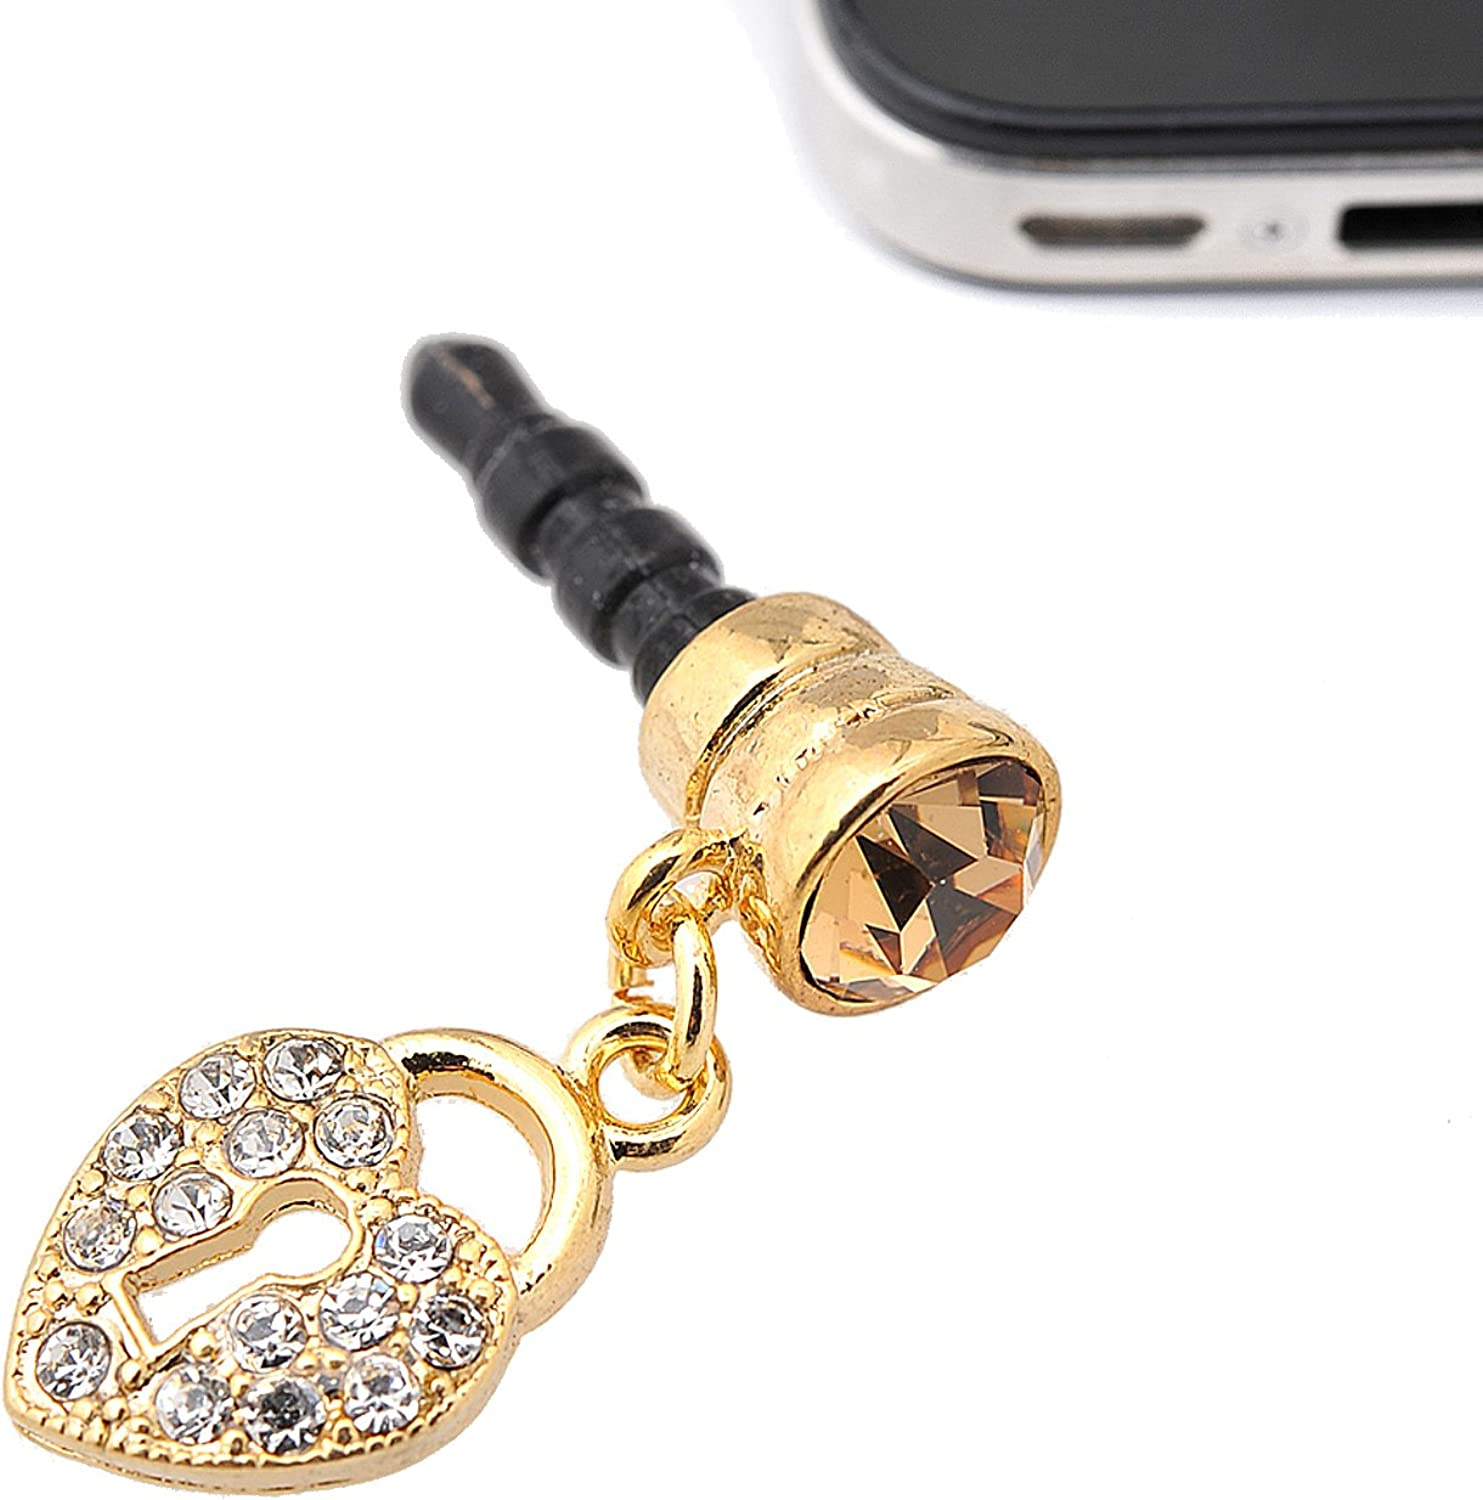 Spinningdaisy Crystal Lock Charm Anti Dust Plug OFFicial store Cover We OFFer at cheap prices Stopper